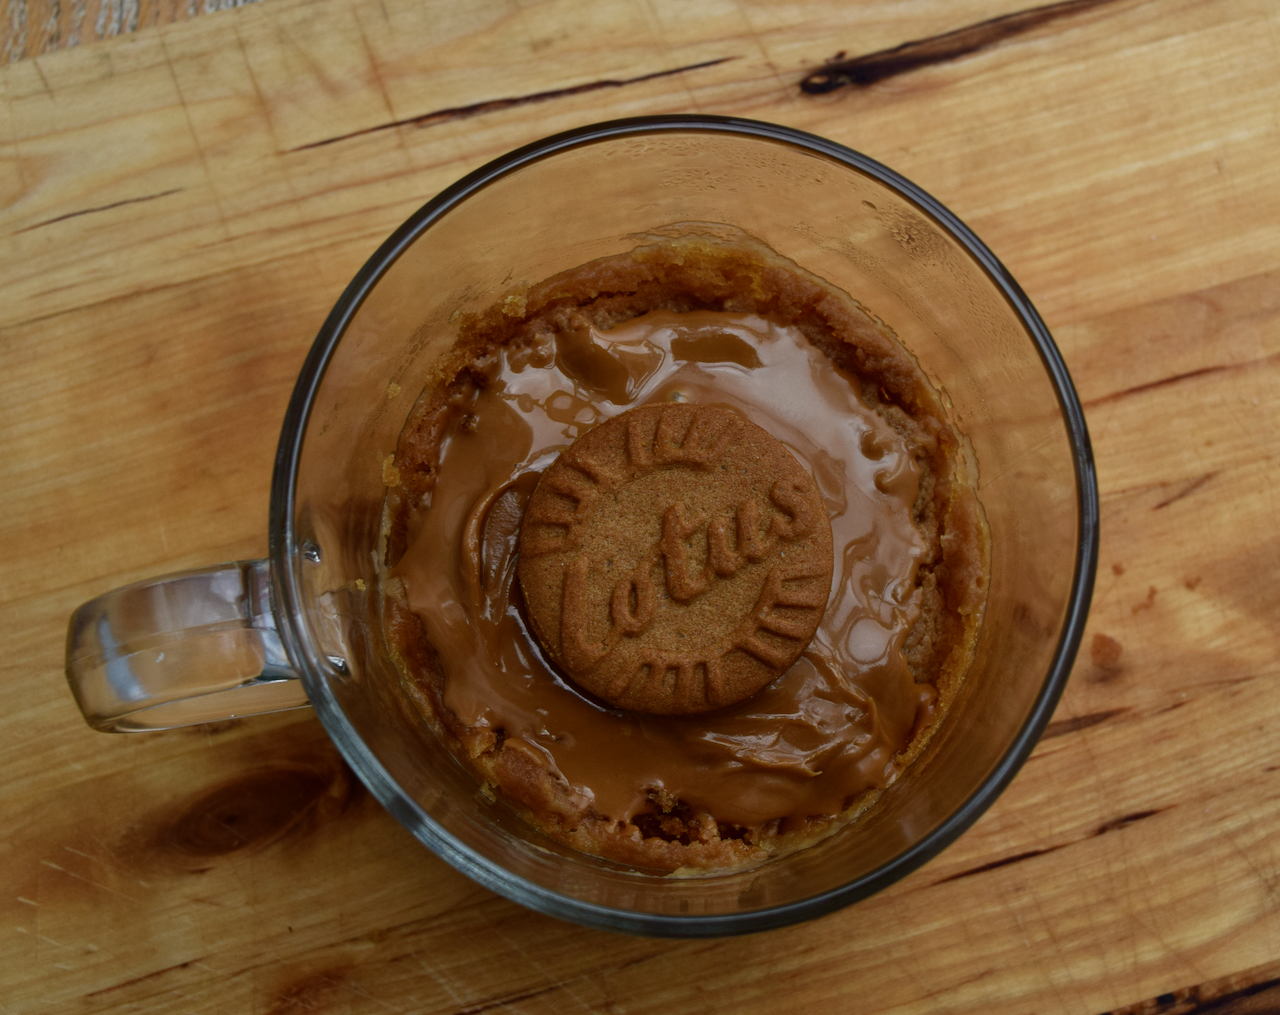 Biscoff Spread Mug Cake recipe from Lucy Loves Food Blog